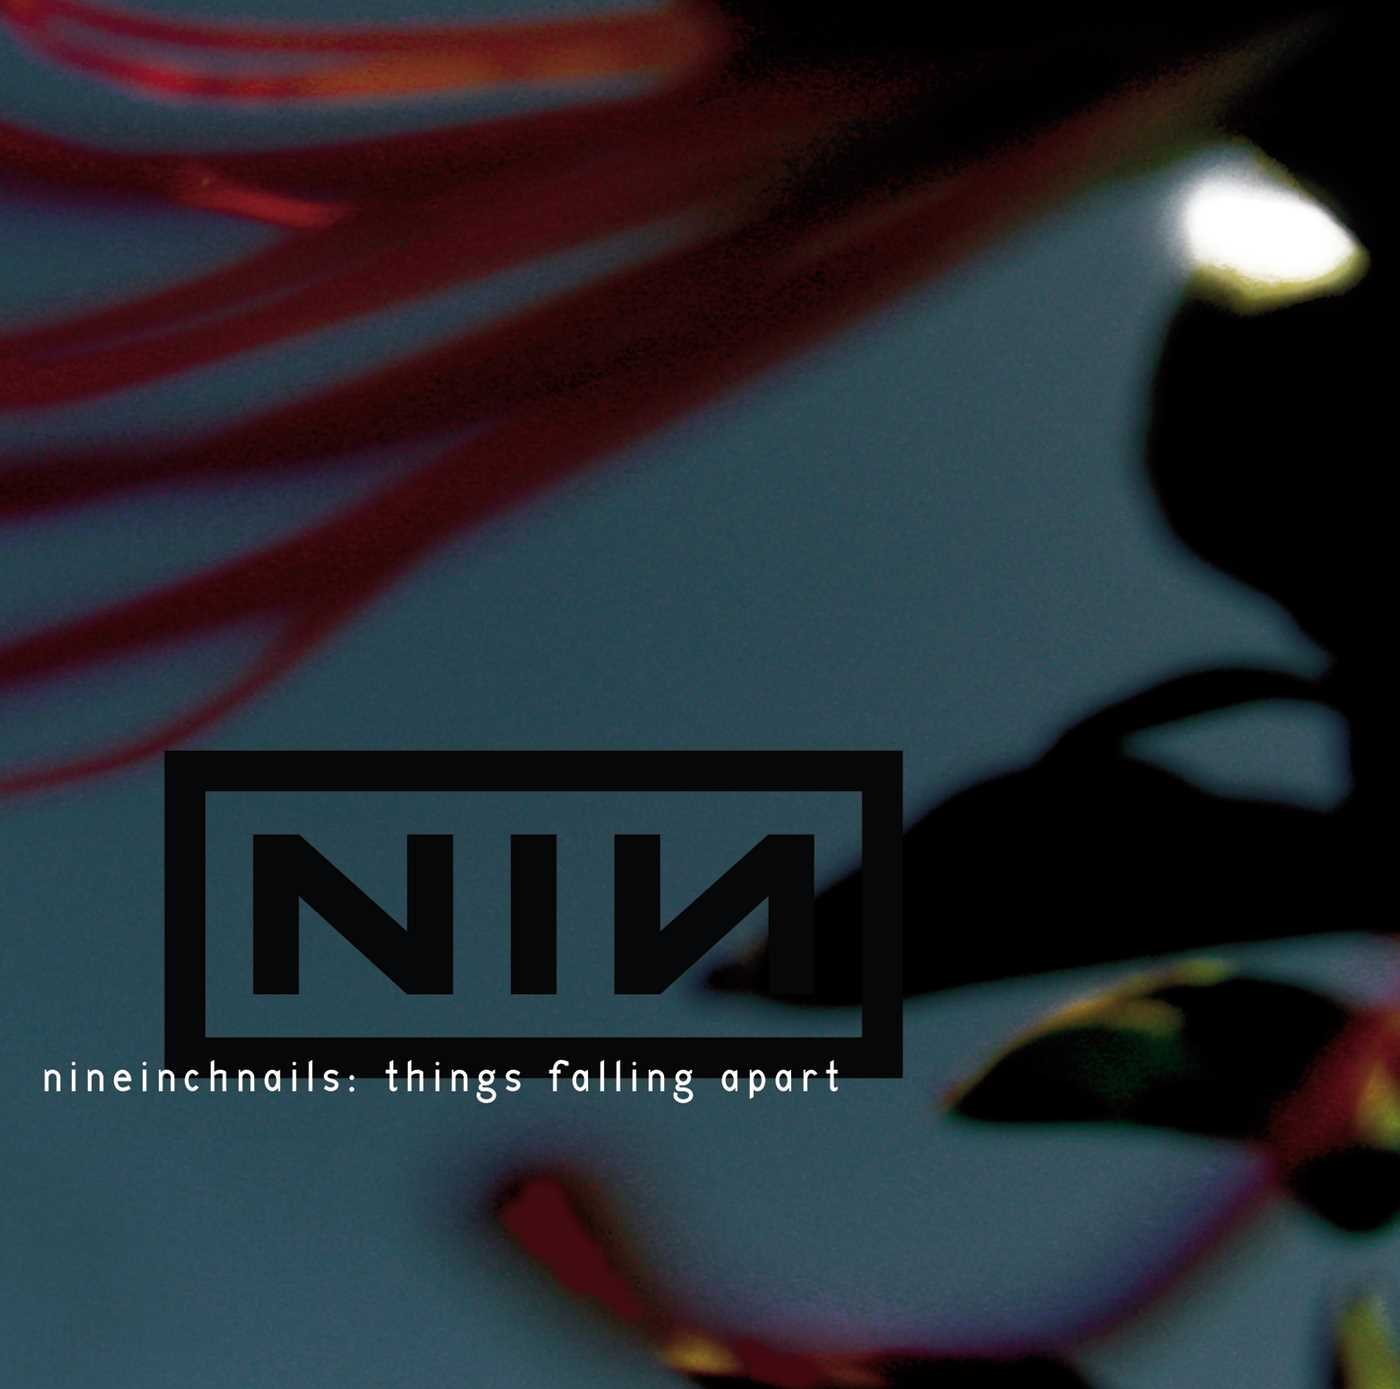 Nine Inch Nails - Things Falling Apart (Remix EP) - Amazon.com Music